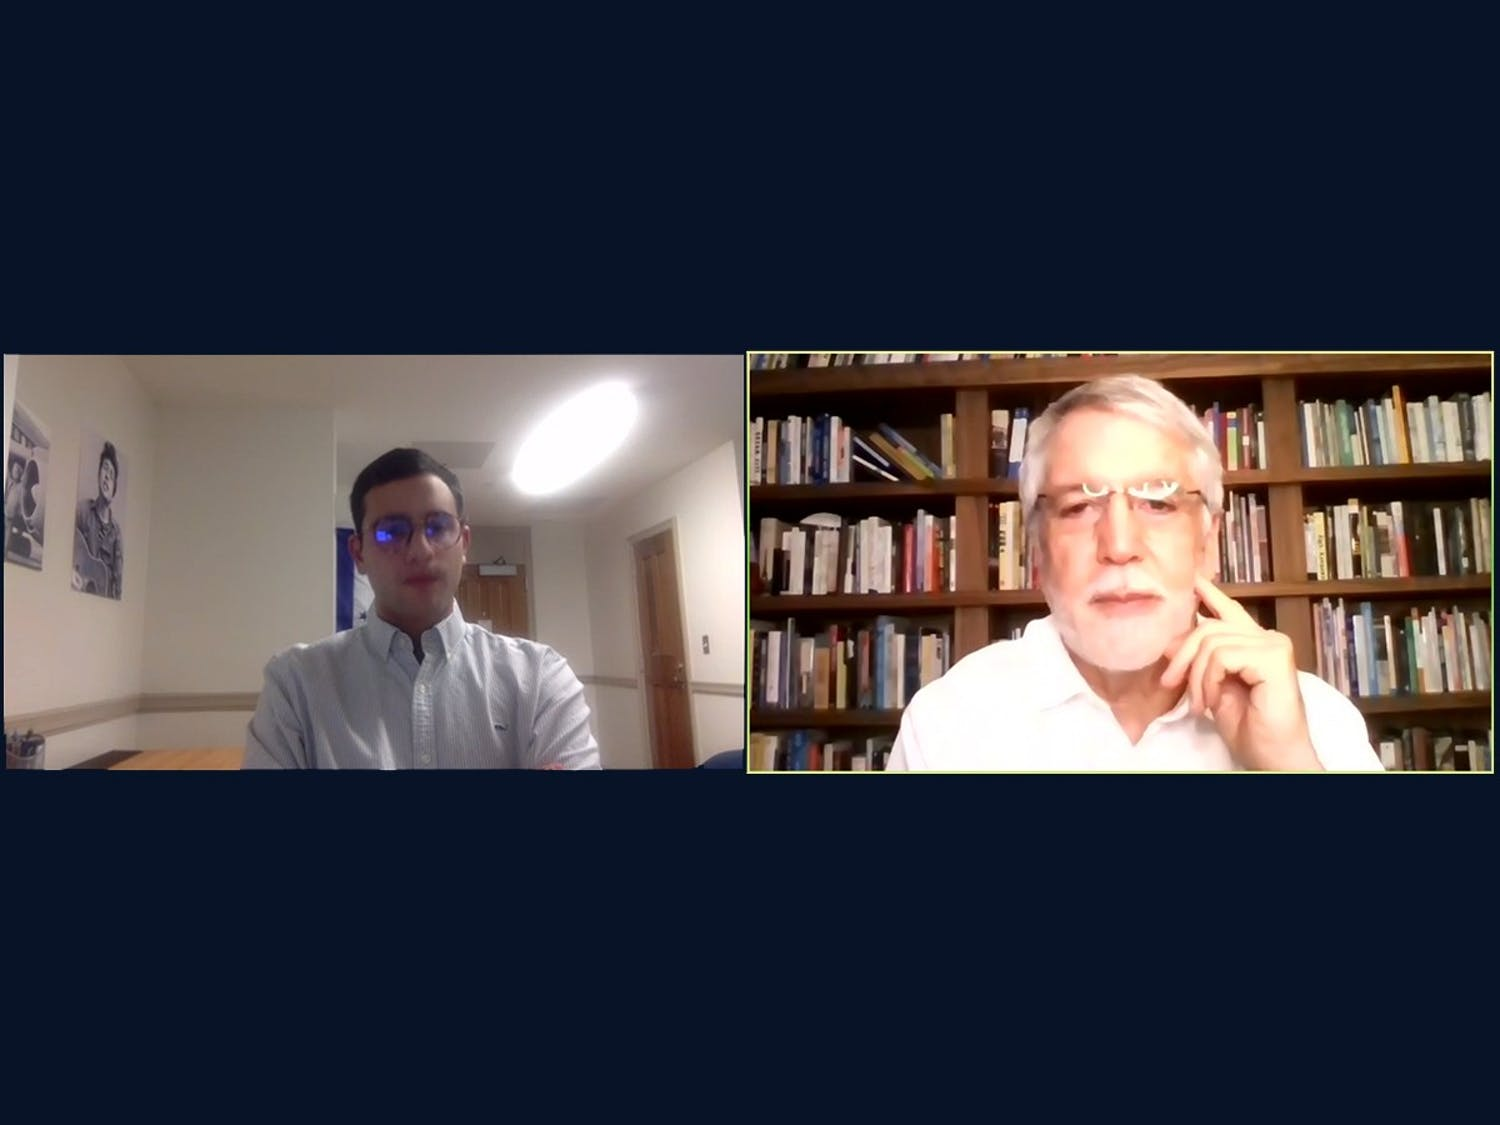 In a virtual talk hosted by Duke's Latin American Student Organization, Enrique Peñalosa, Trinity '77 and former mayor of Bogota, Colombia, discussed his work as the mayor of Bogotá, his views on democracy and his time as an undergraduate at Duke.